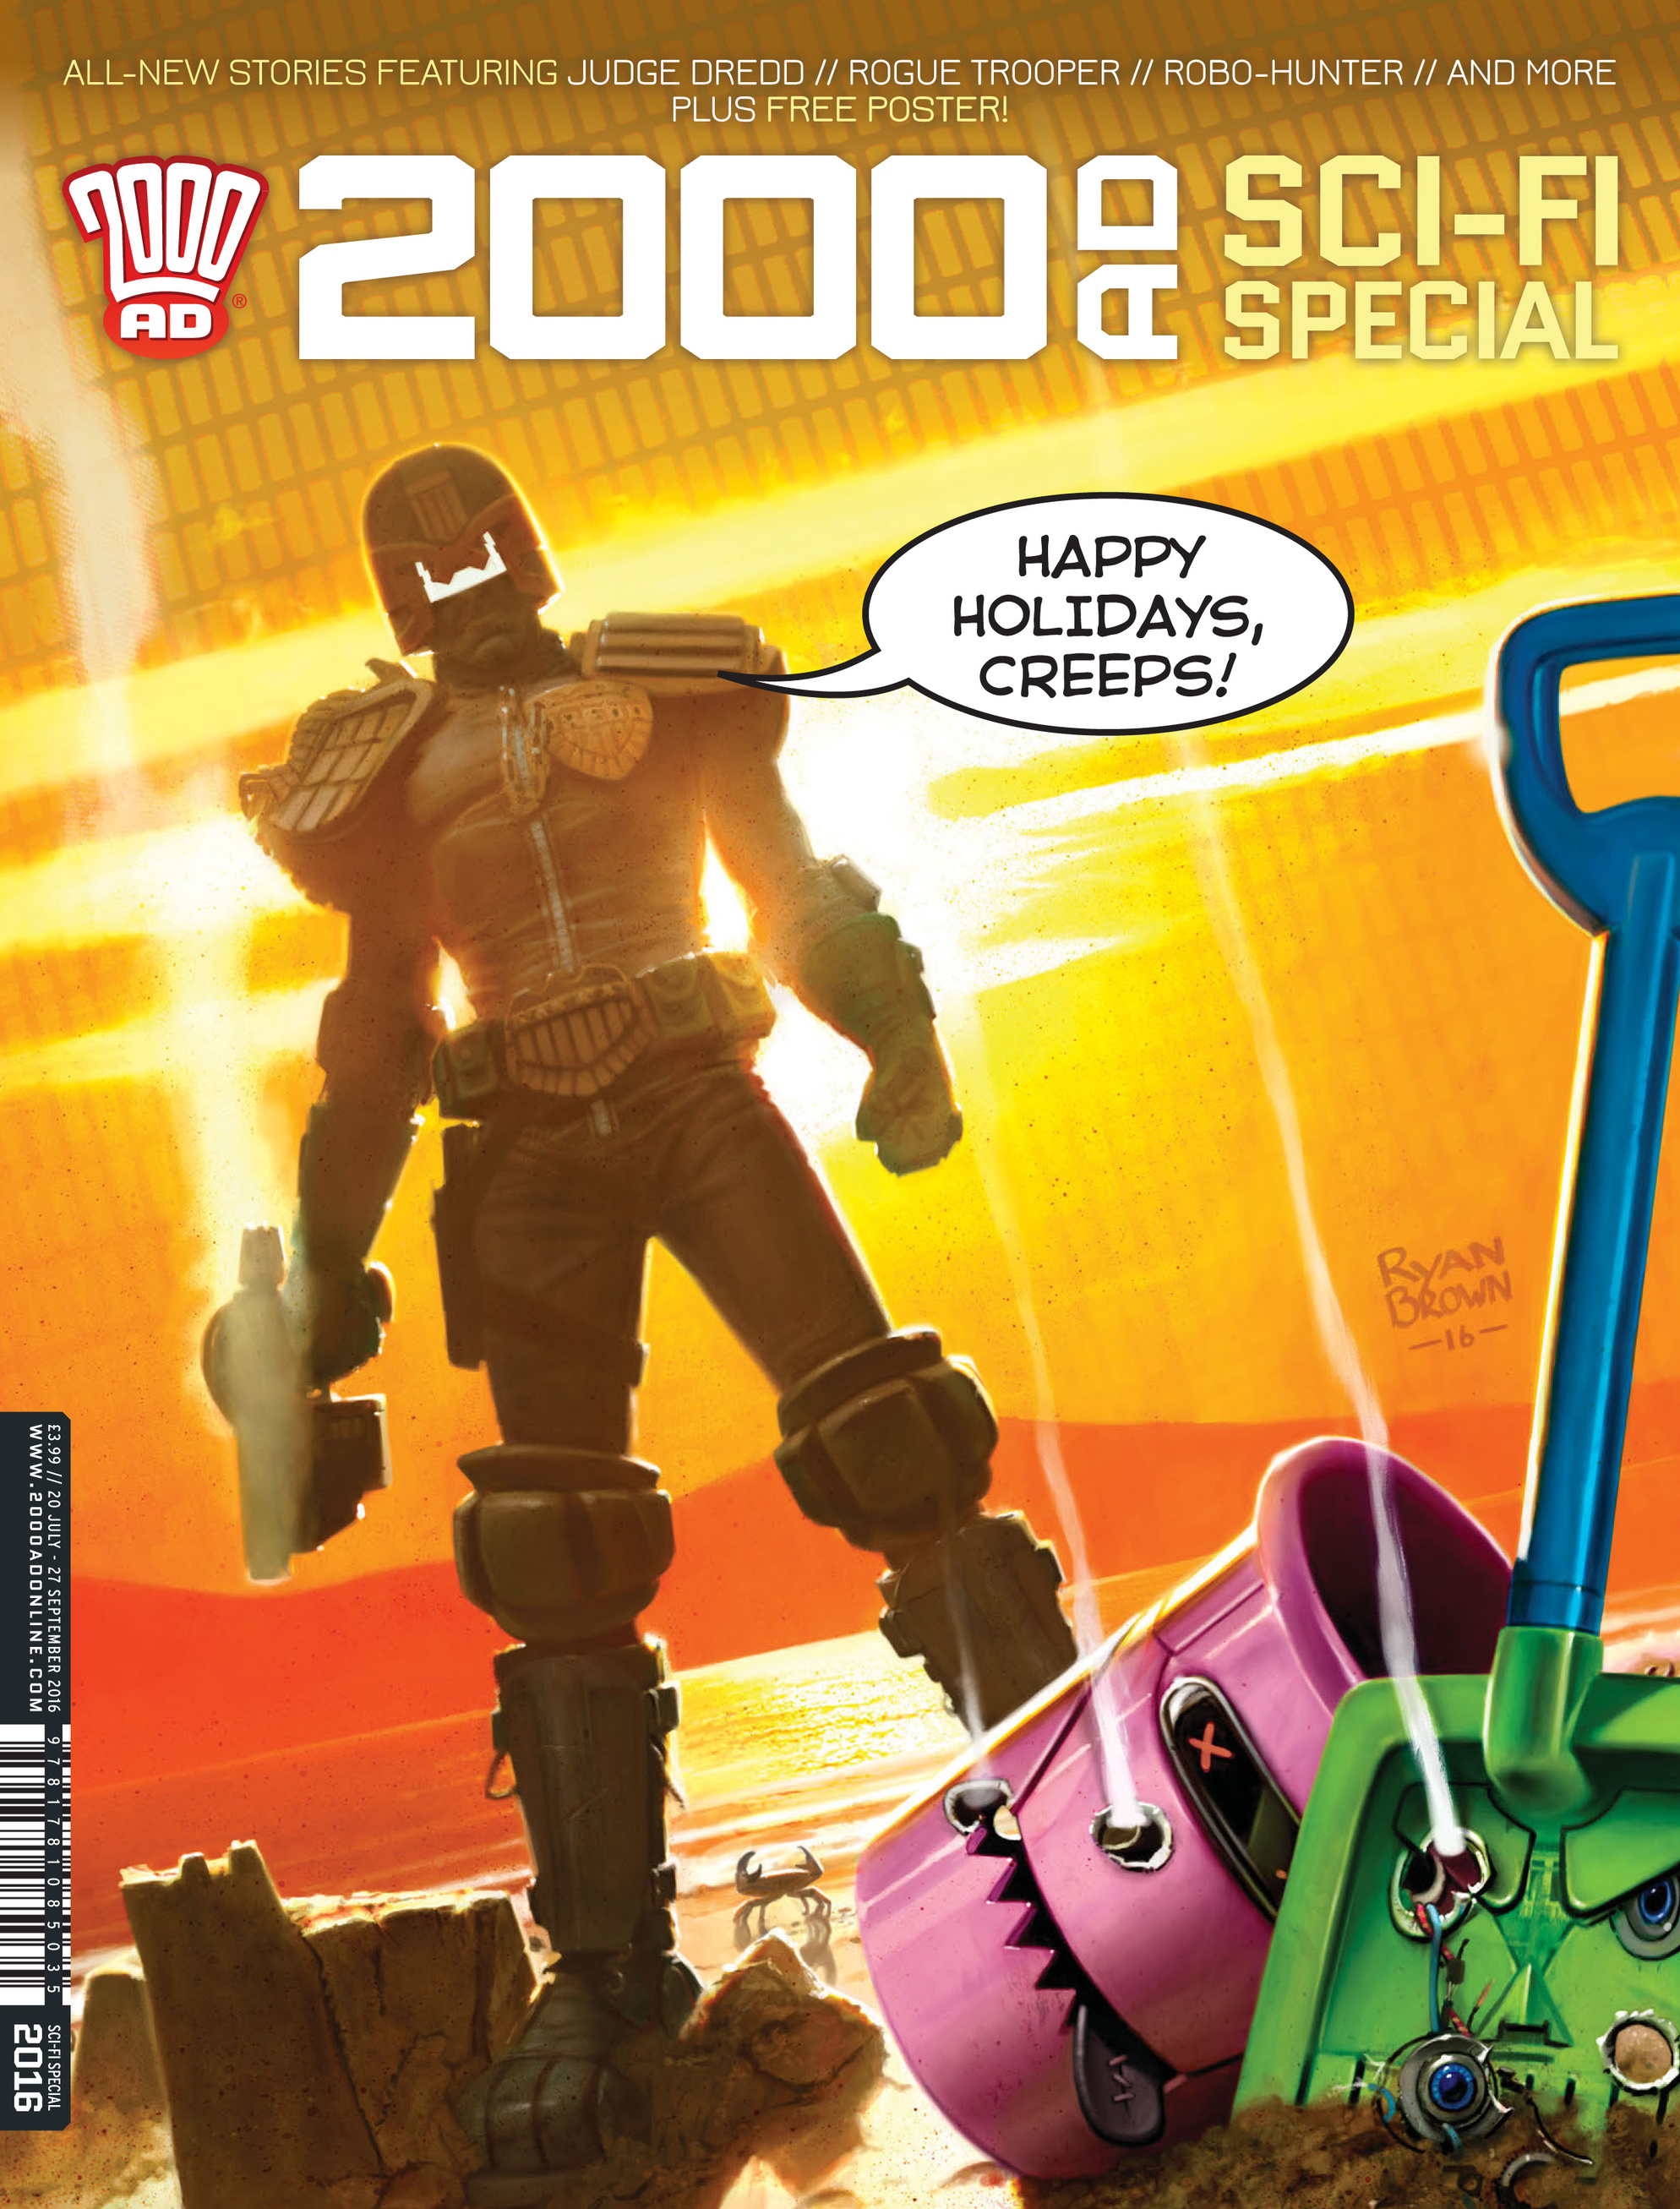 Read online 2000 AD comic -  Issue #2000 AD _Sci-Fi Special 2016 - 1